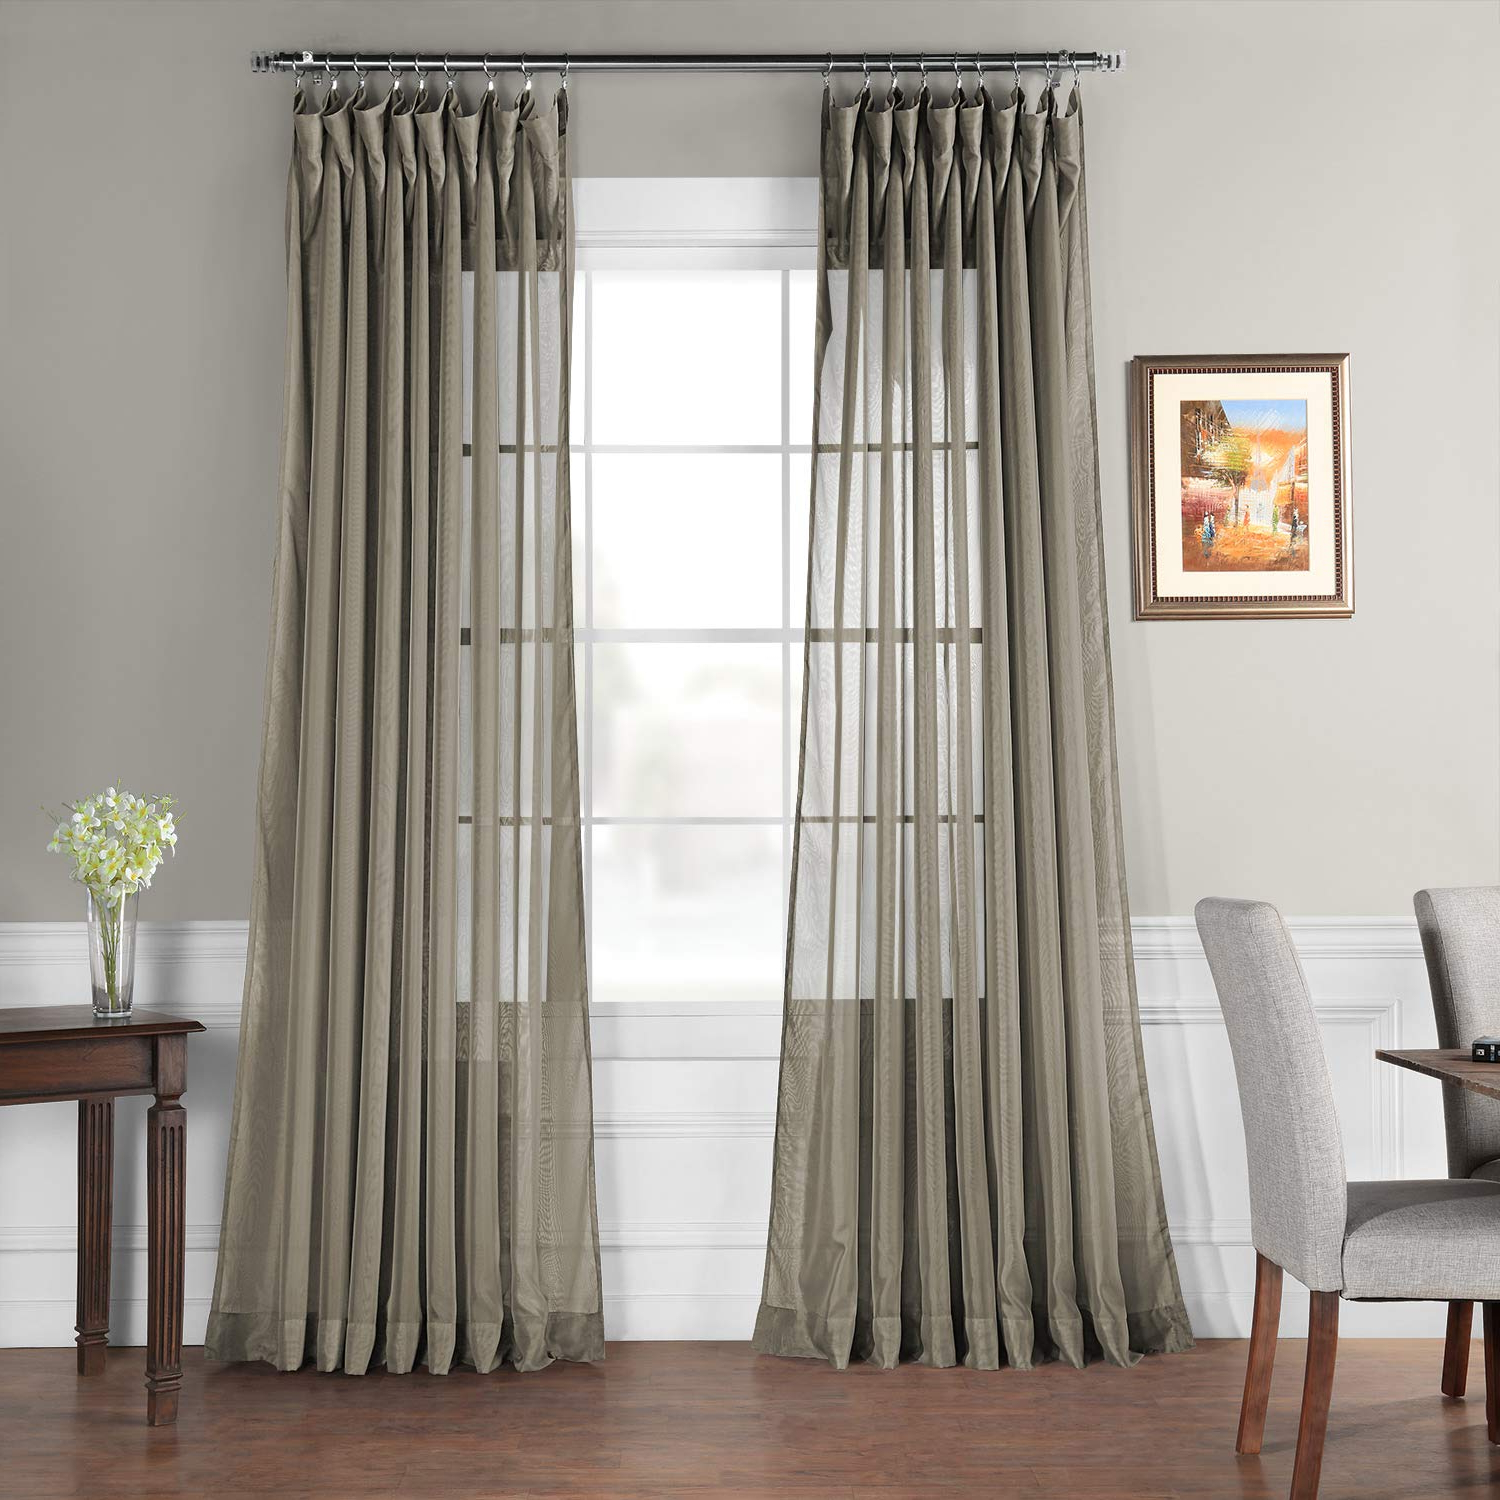 Hpd Half Price Drapes Signature Extra Wide Sheer Curtain, Museum Grey (Grey) In Widely Used Signature White Double Layer Sheer Curtain Panels (Gallery 20 of 20)